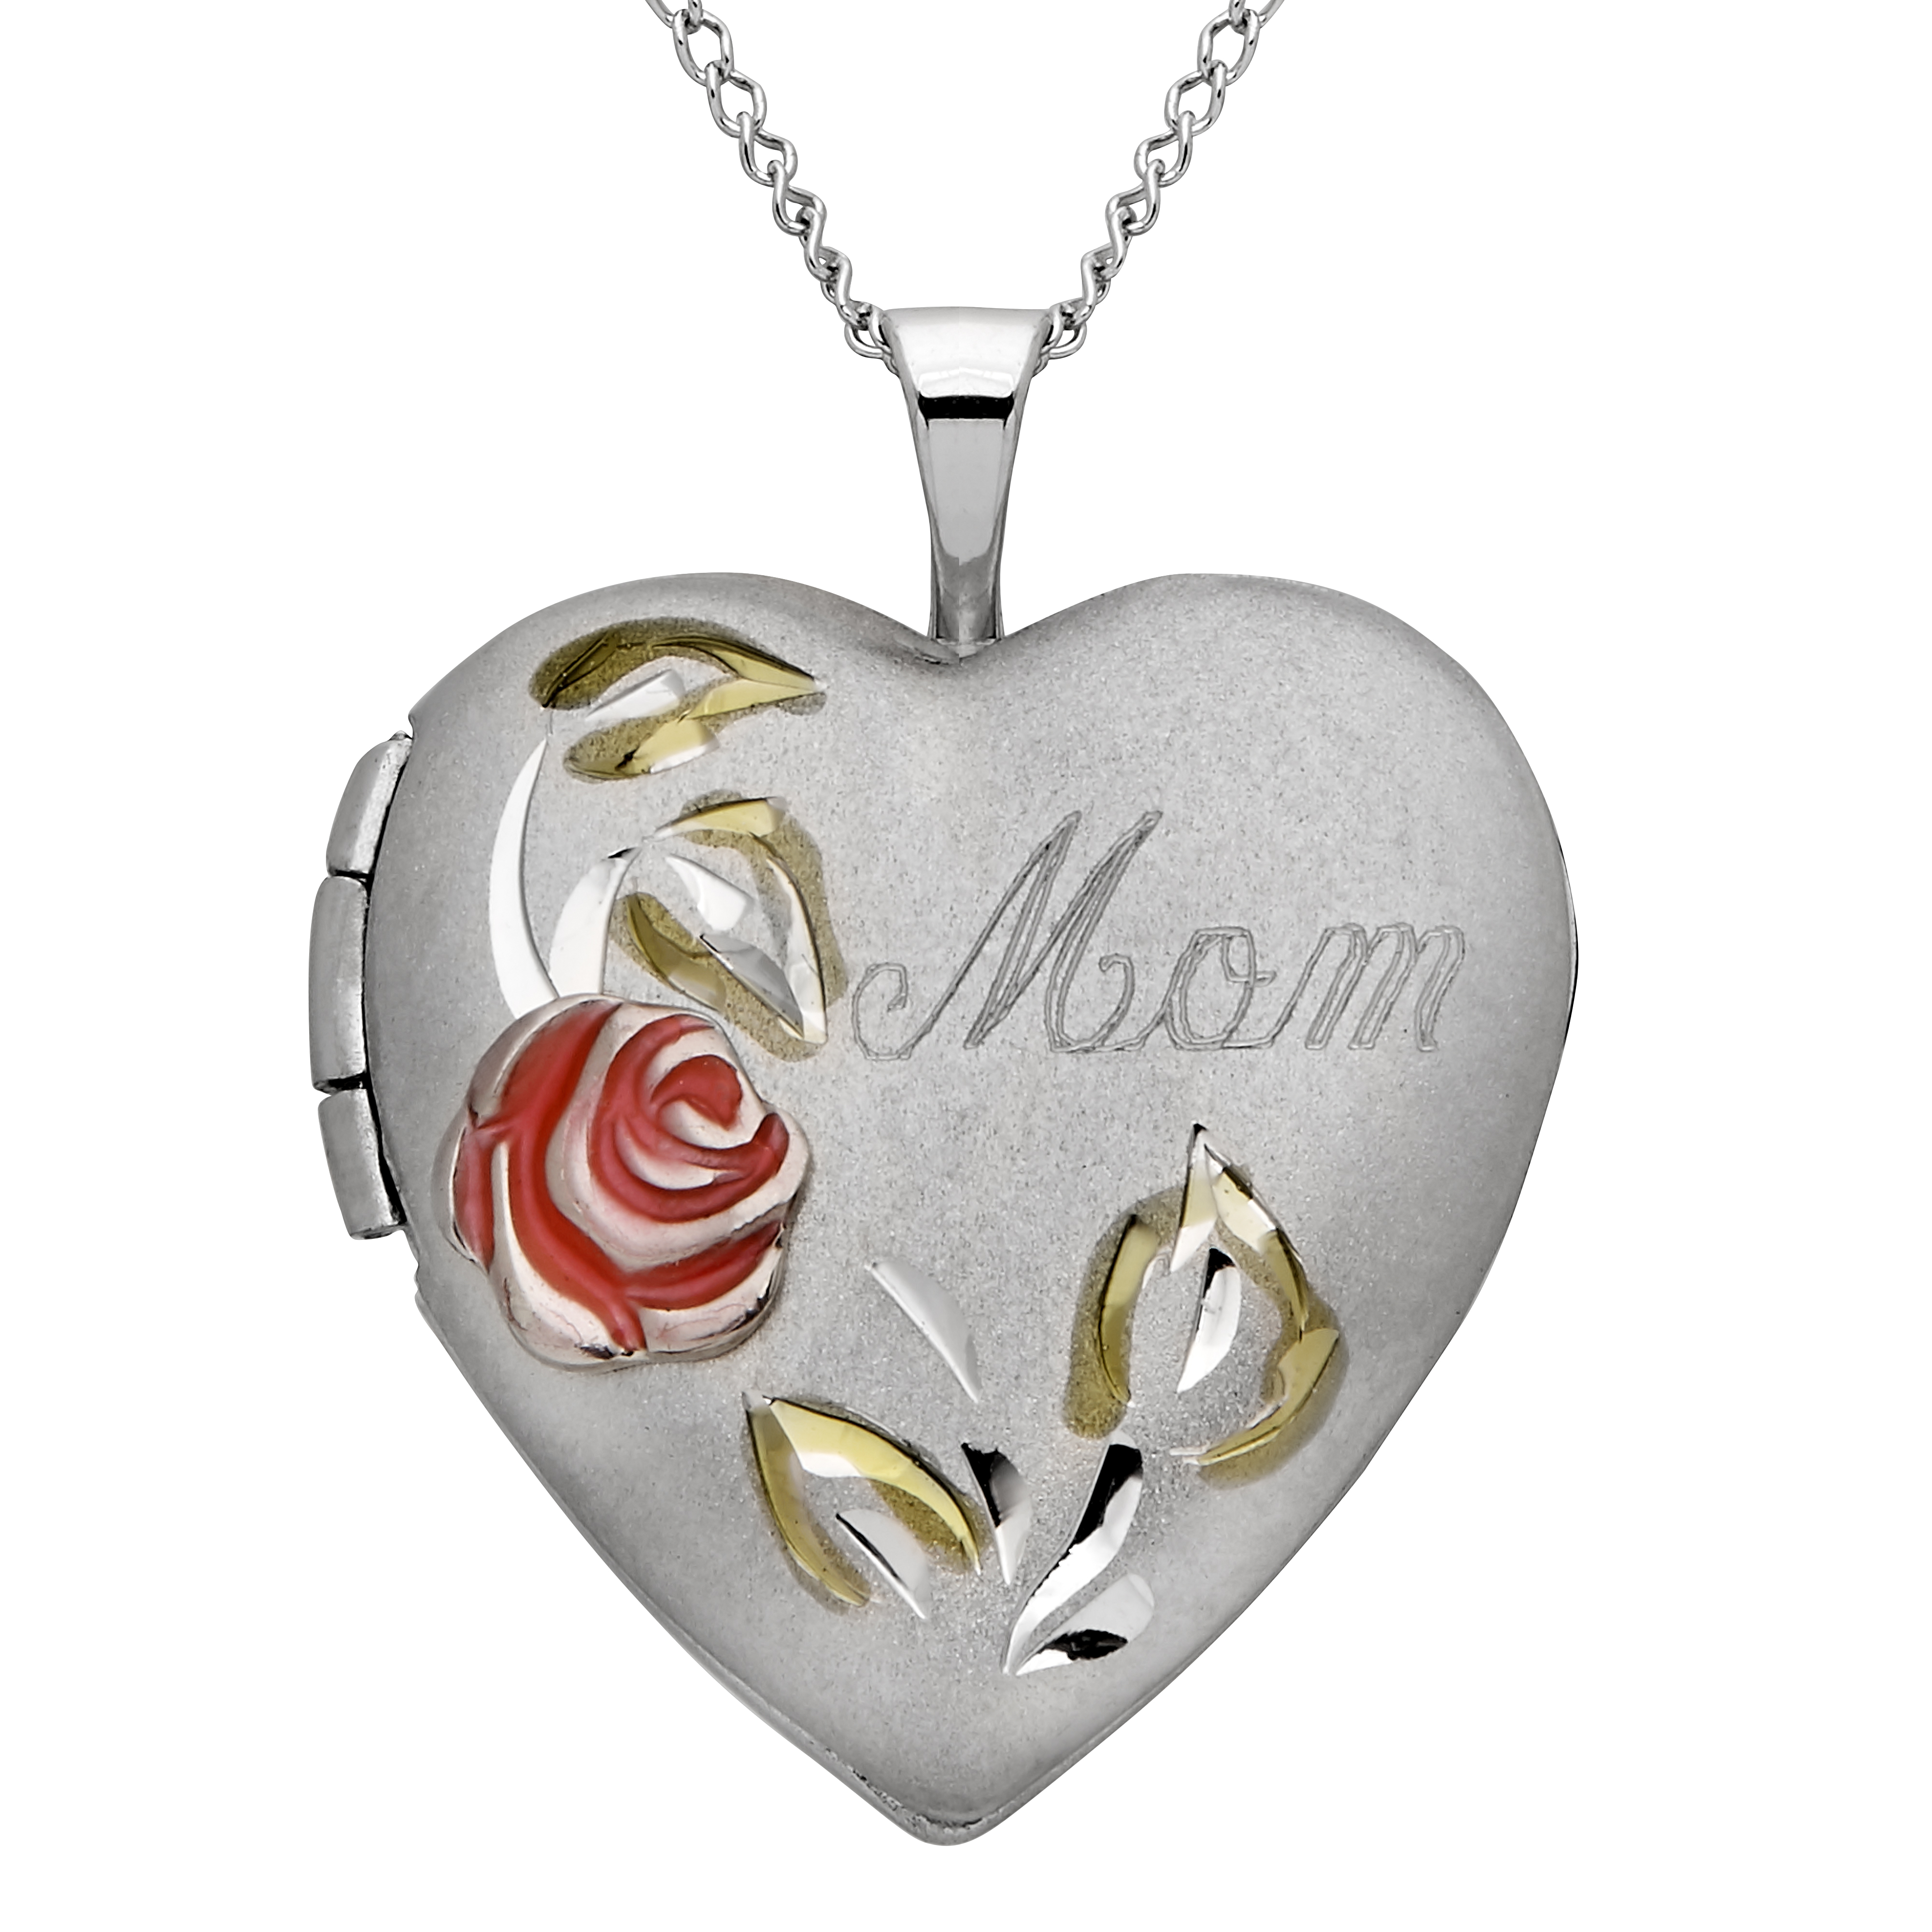 "Mom"" with Painted Rose Heart Locket Pendant in Sterling Silver, 18"